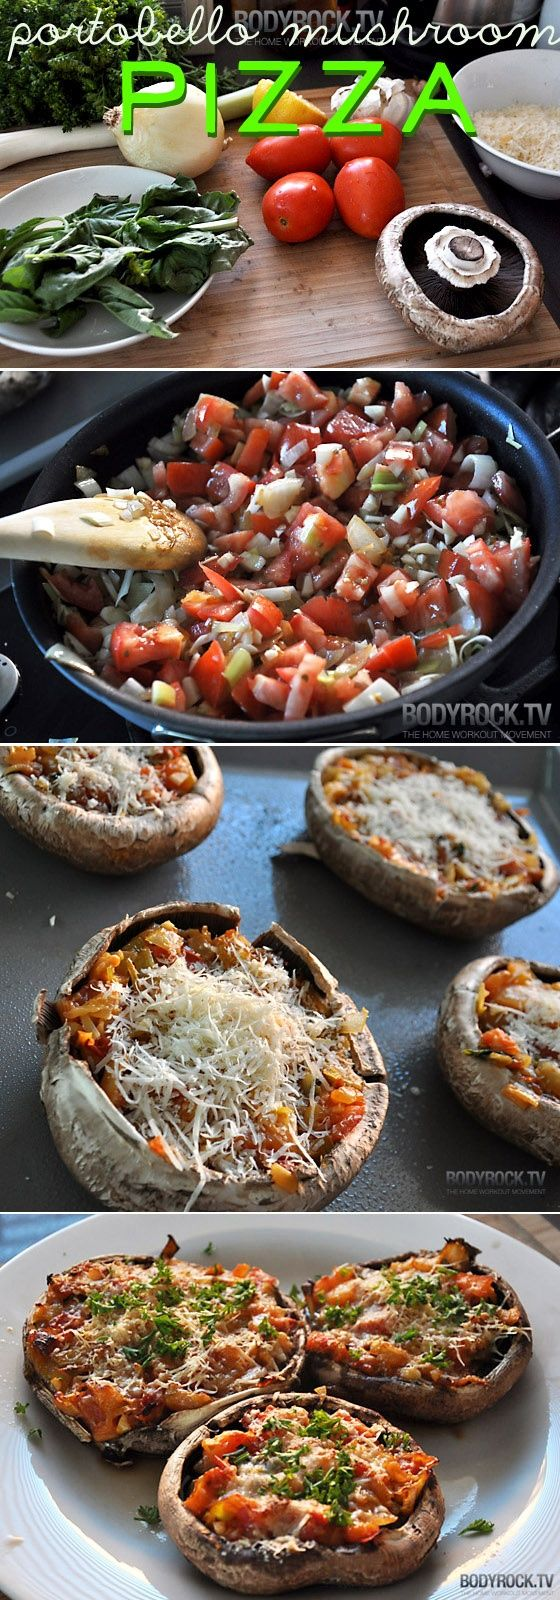 No crust needed. Portobello mushroom pizza. YUM. Check out more foods for healthy aging here!